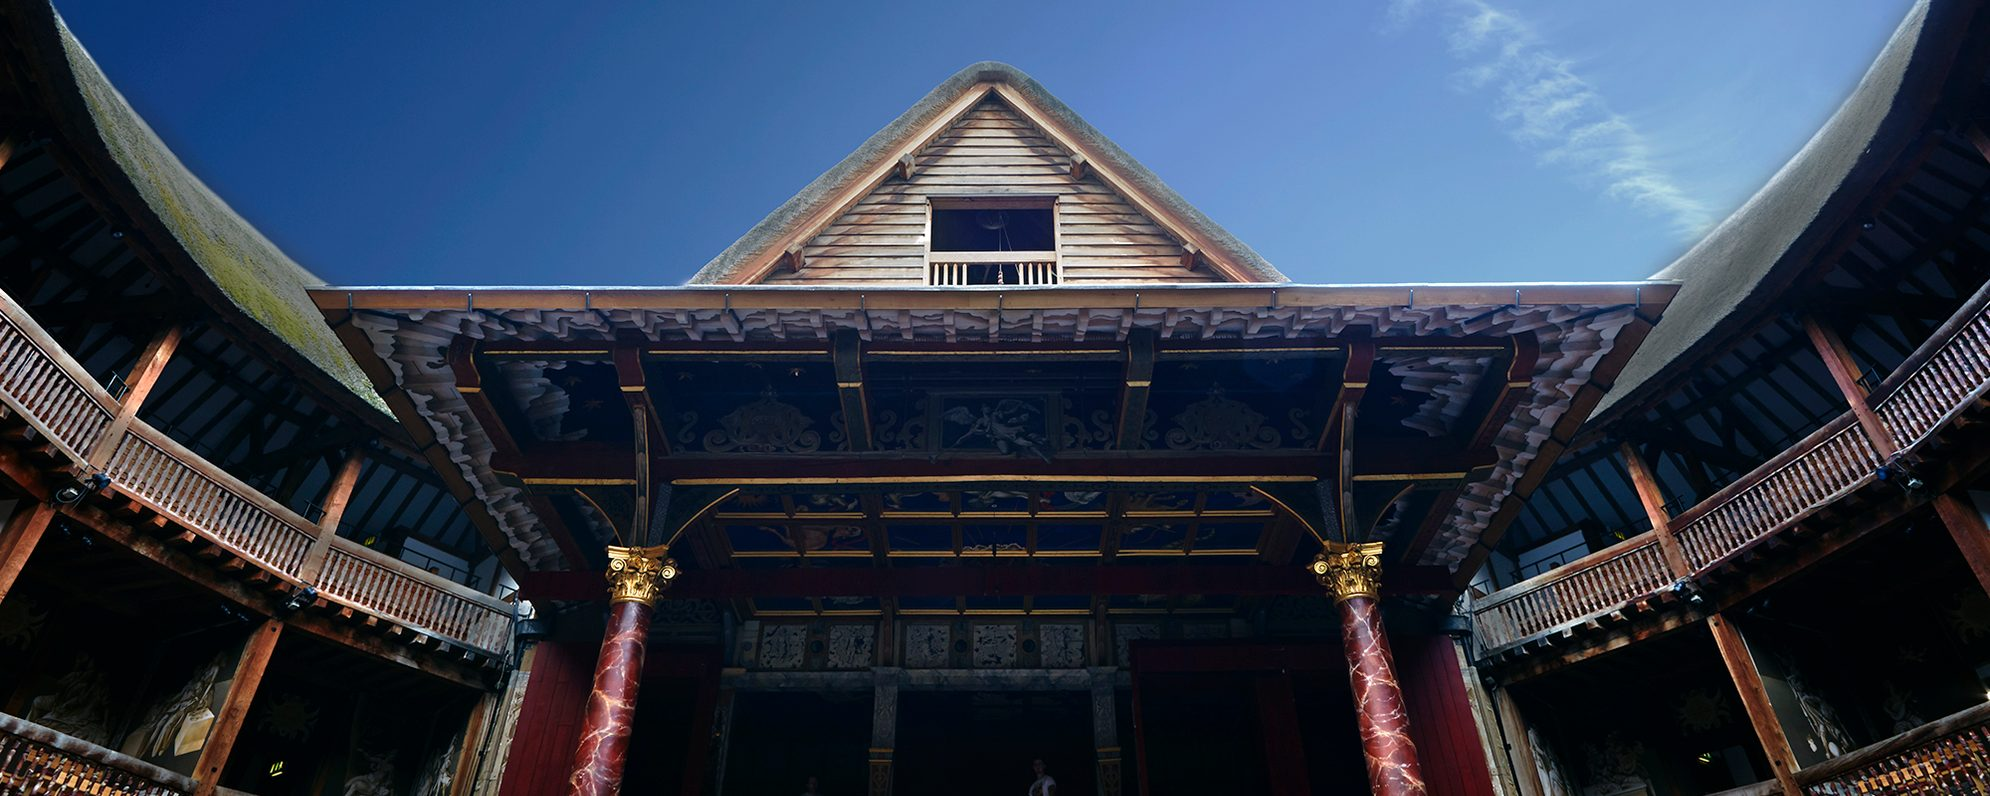 A blue sky over the pointed roof of a timber structure theatre.